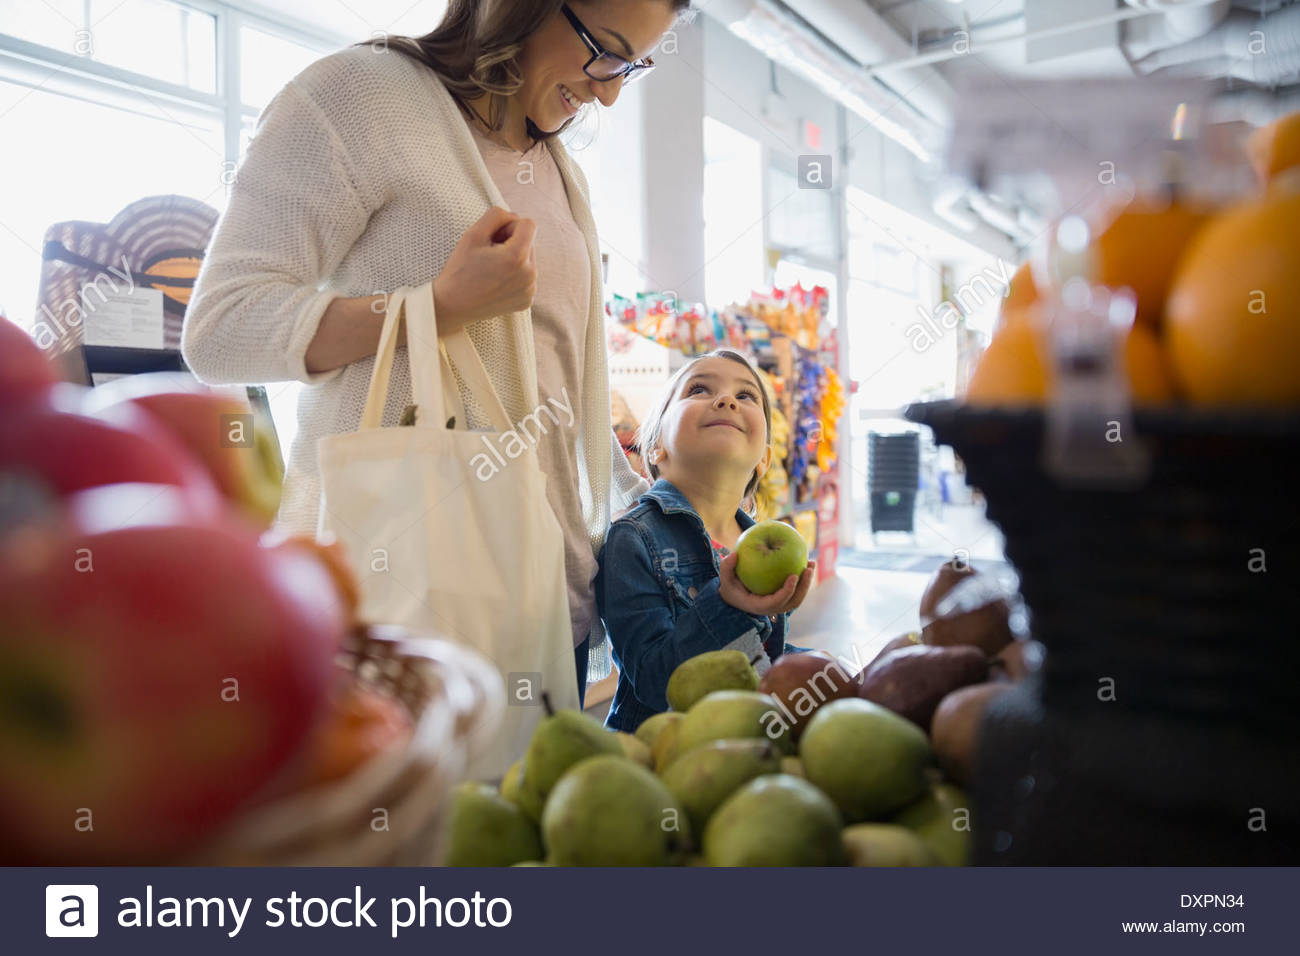 Mother and daughter shopping for produce in market - Stock Image